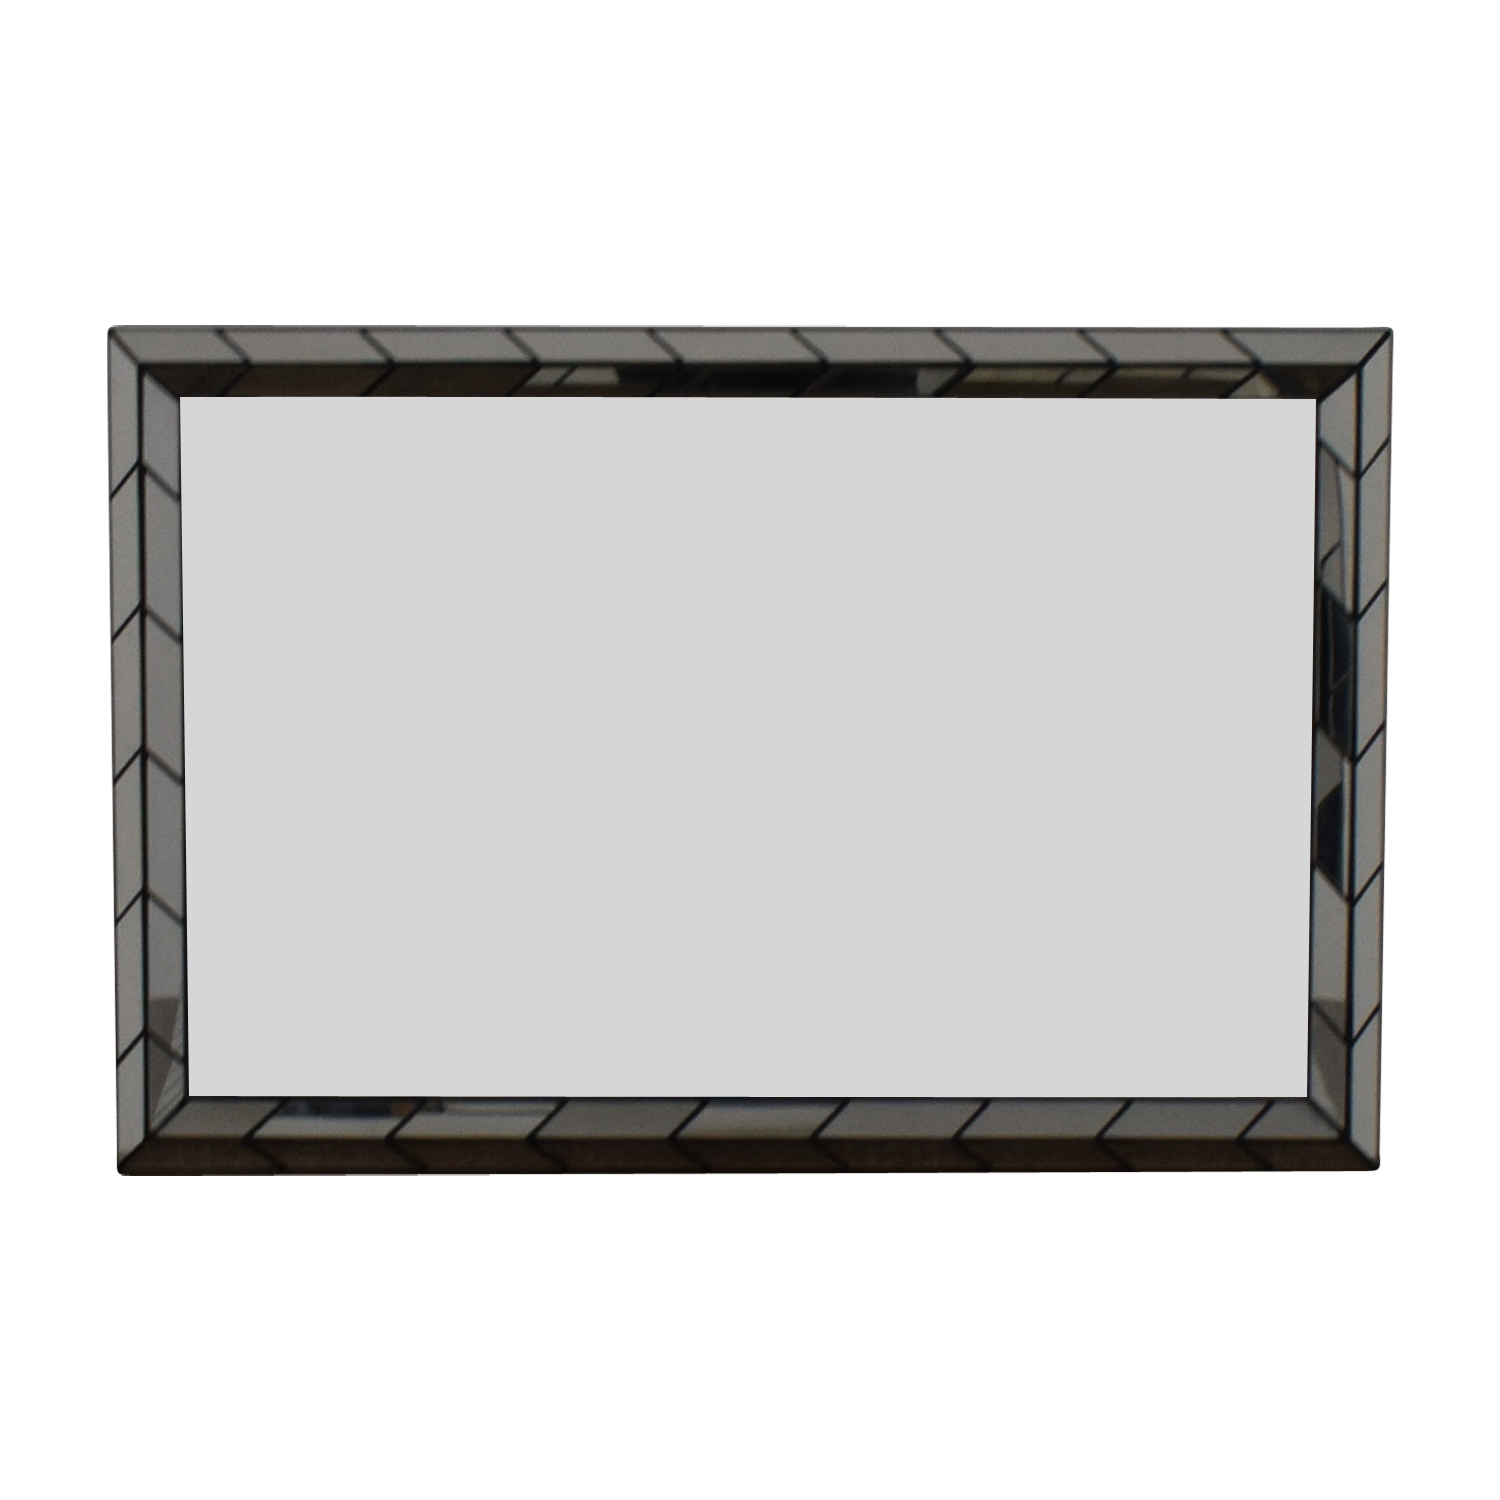 West Elm West Elm Geometric Mirror for sale